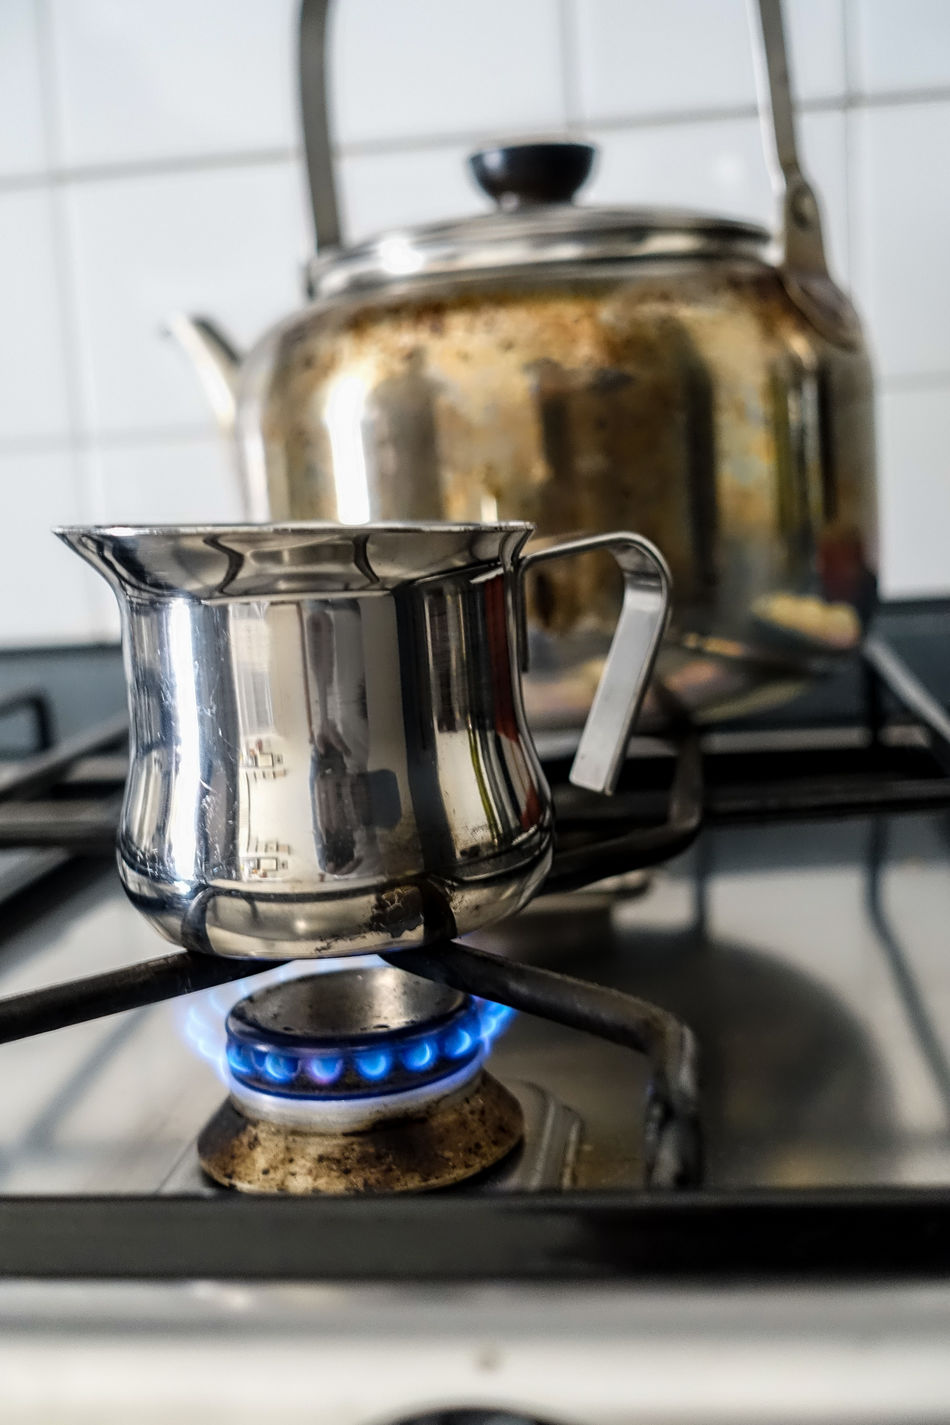 Appliance Burner - Stove Top Burning Camping Stove Close-up Cooking Utensil Day Domestic Kitchen Domestic Life Domestic Room Espresso Maker Flame Food Food And Drink Gas Gas Stove Burner Heat - Temperature Home Interior Indoors  Kitchen Kitchen Utensil Metal No People Preparation  Stove